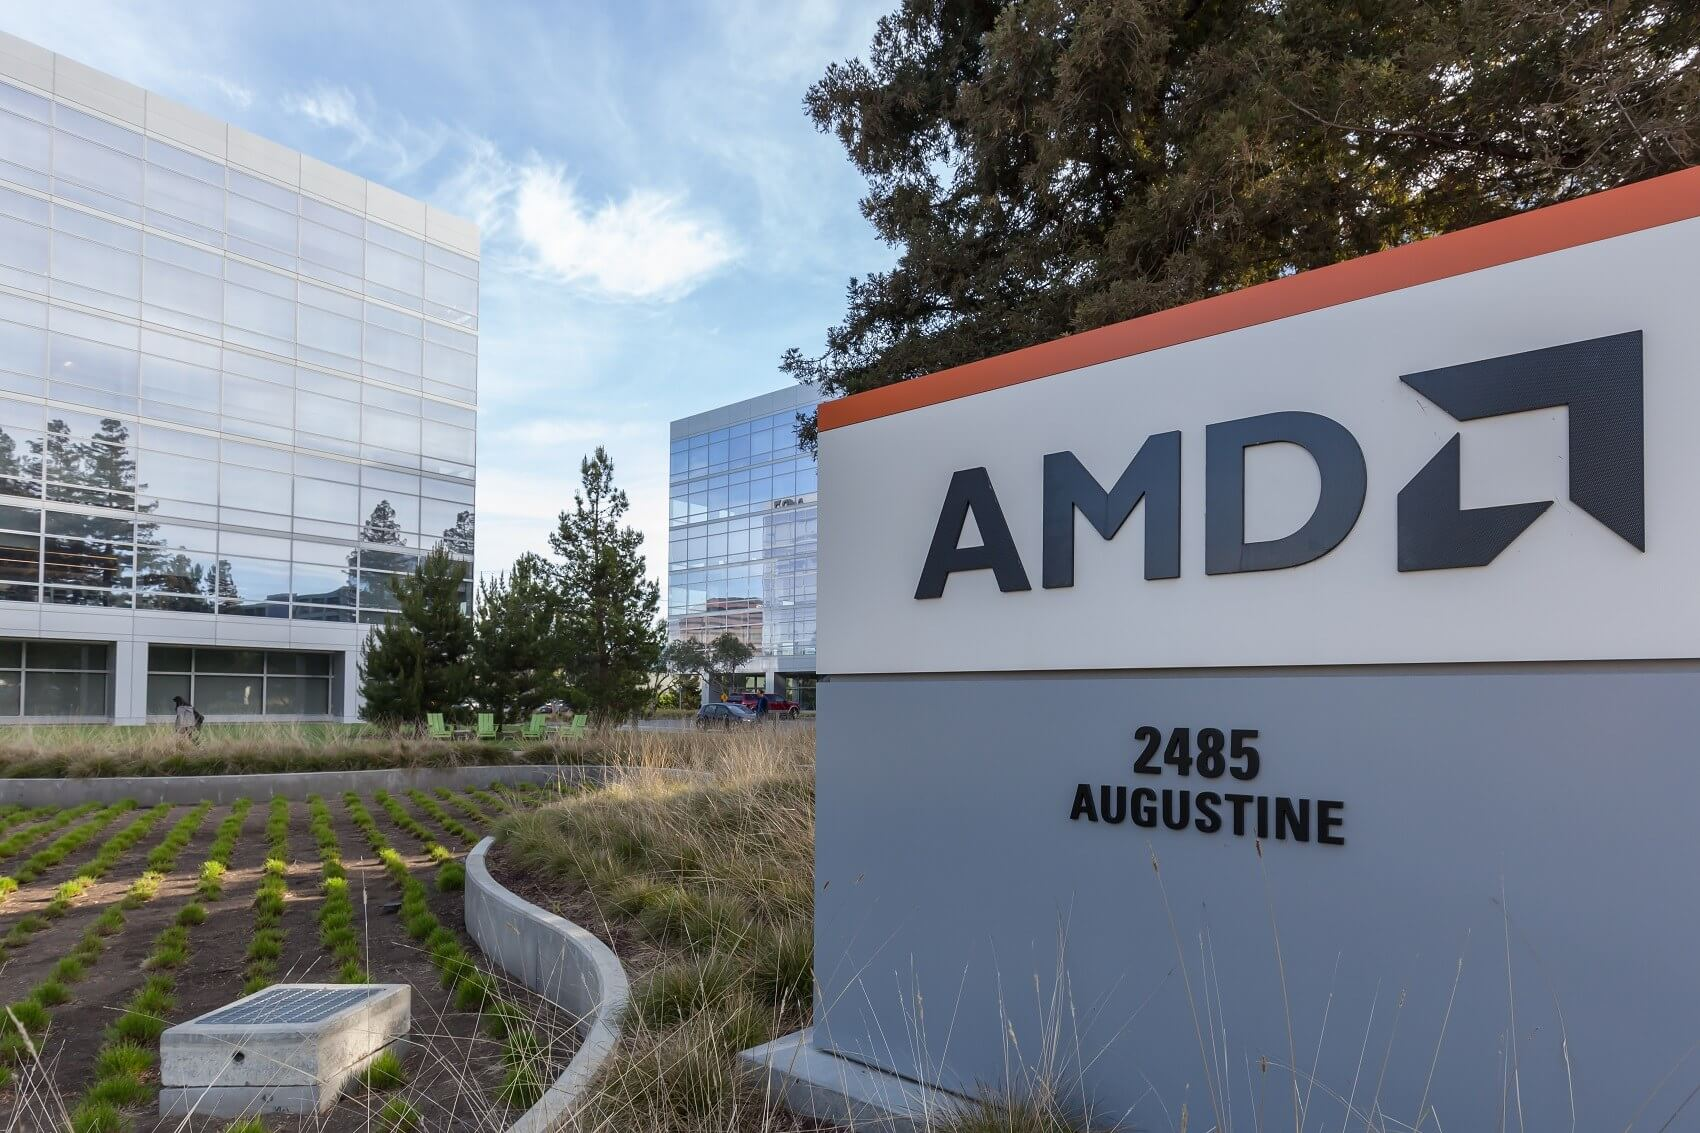 AMD will pay buyers of its Bulldozer and Piledriver CPUs up to $300